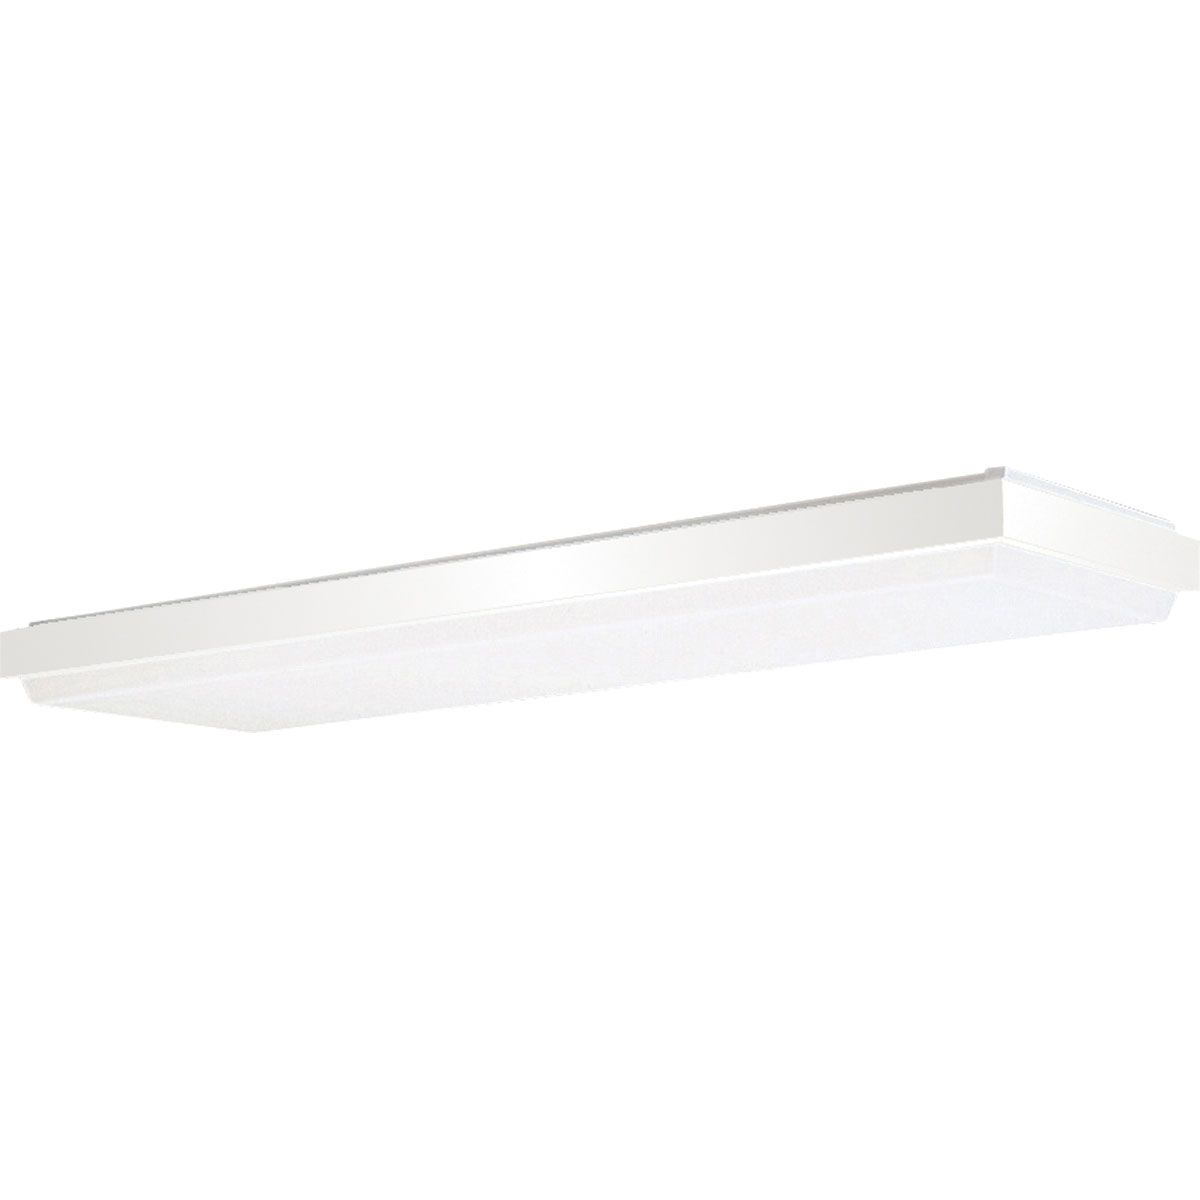 PRO P7264-30EB 4XF32T8 White Acrylic Diffuser Fluorescent Light -MIM- Discontinued by the mfg 06/2019